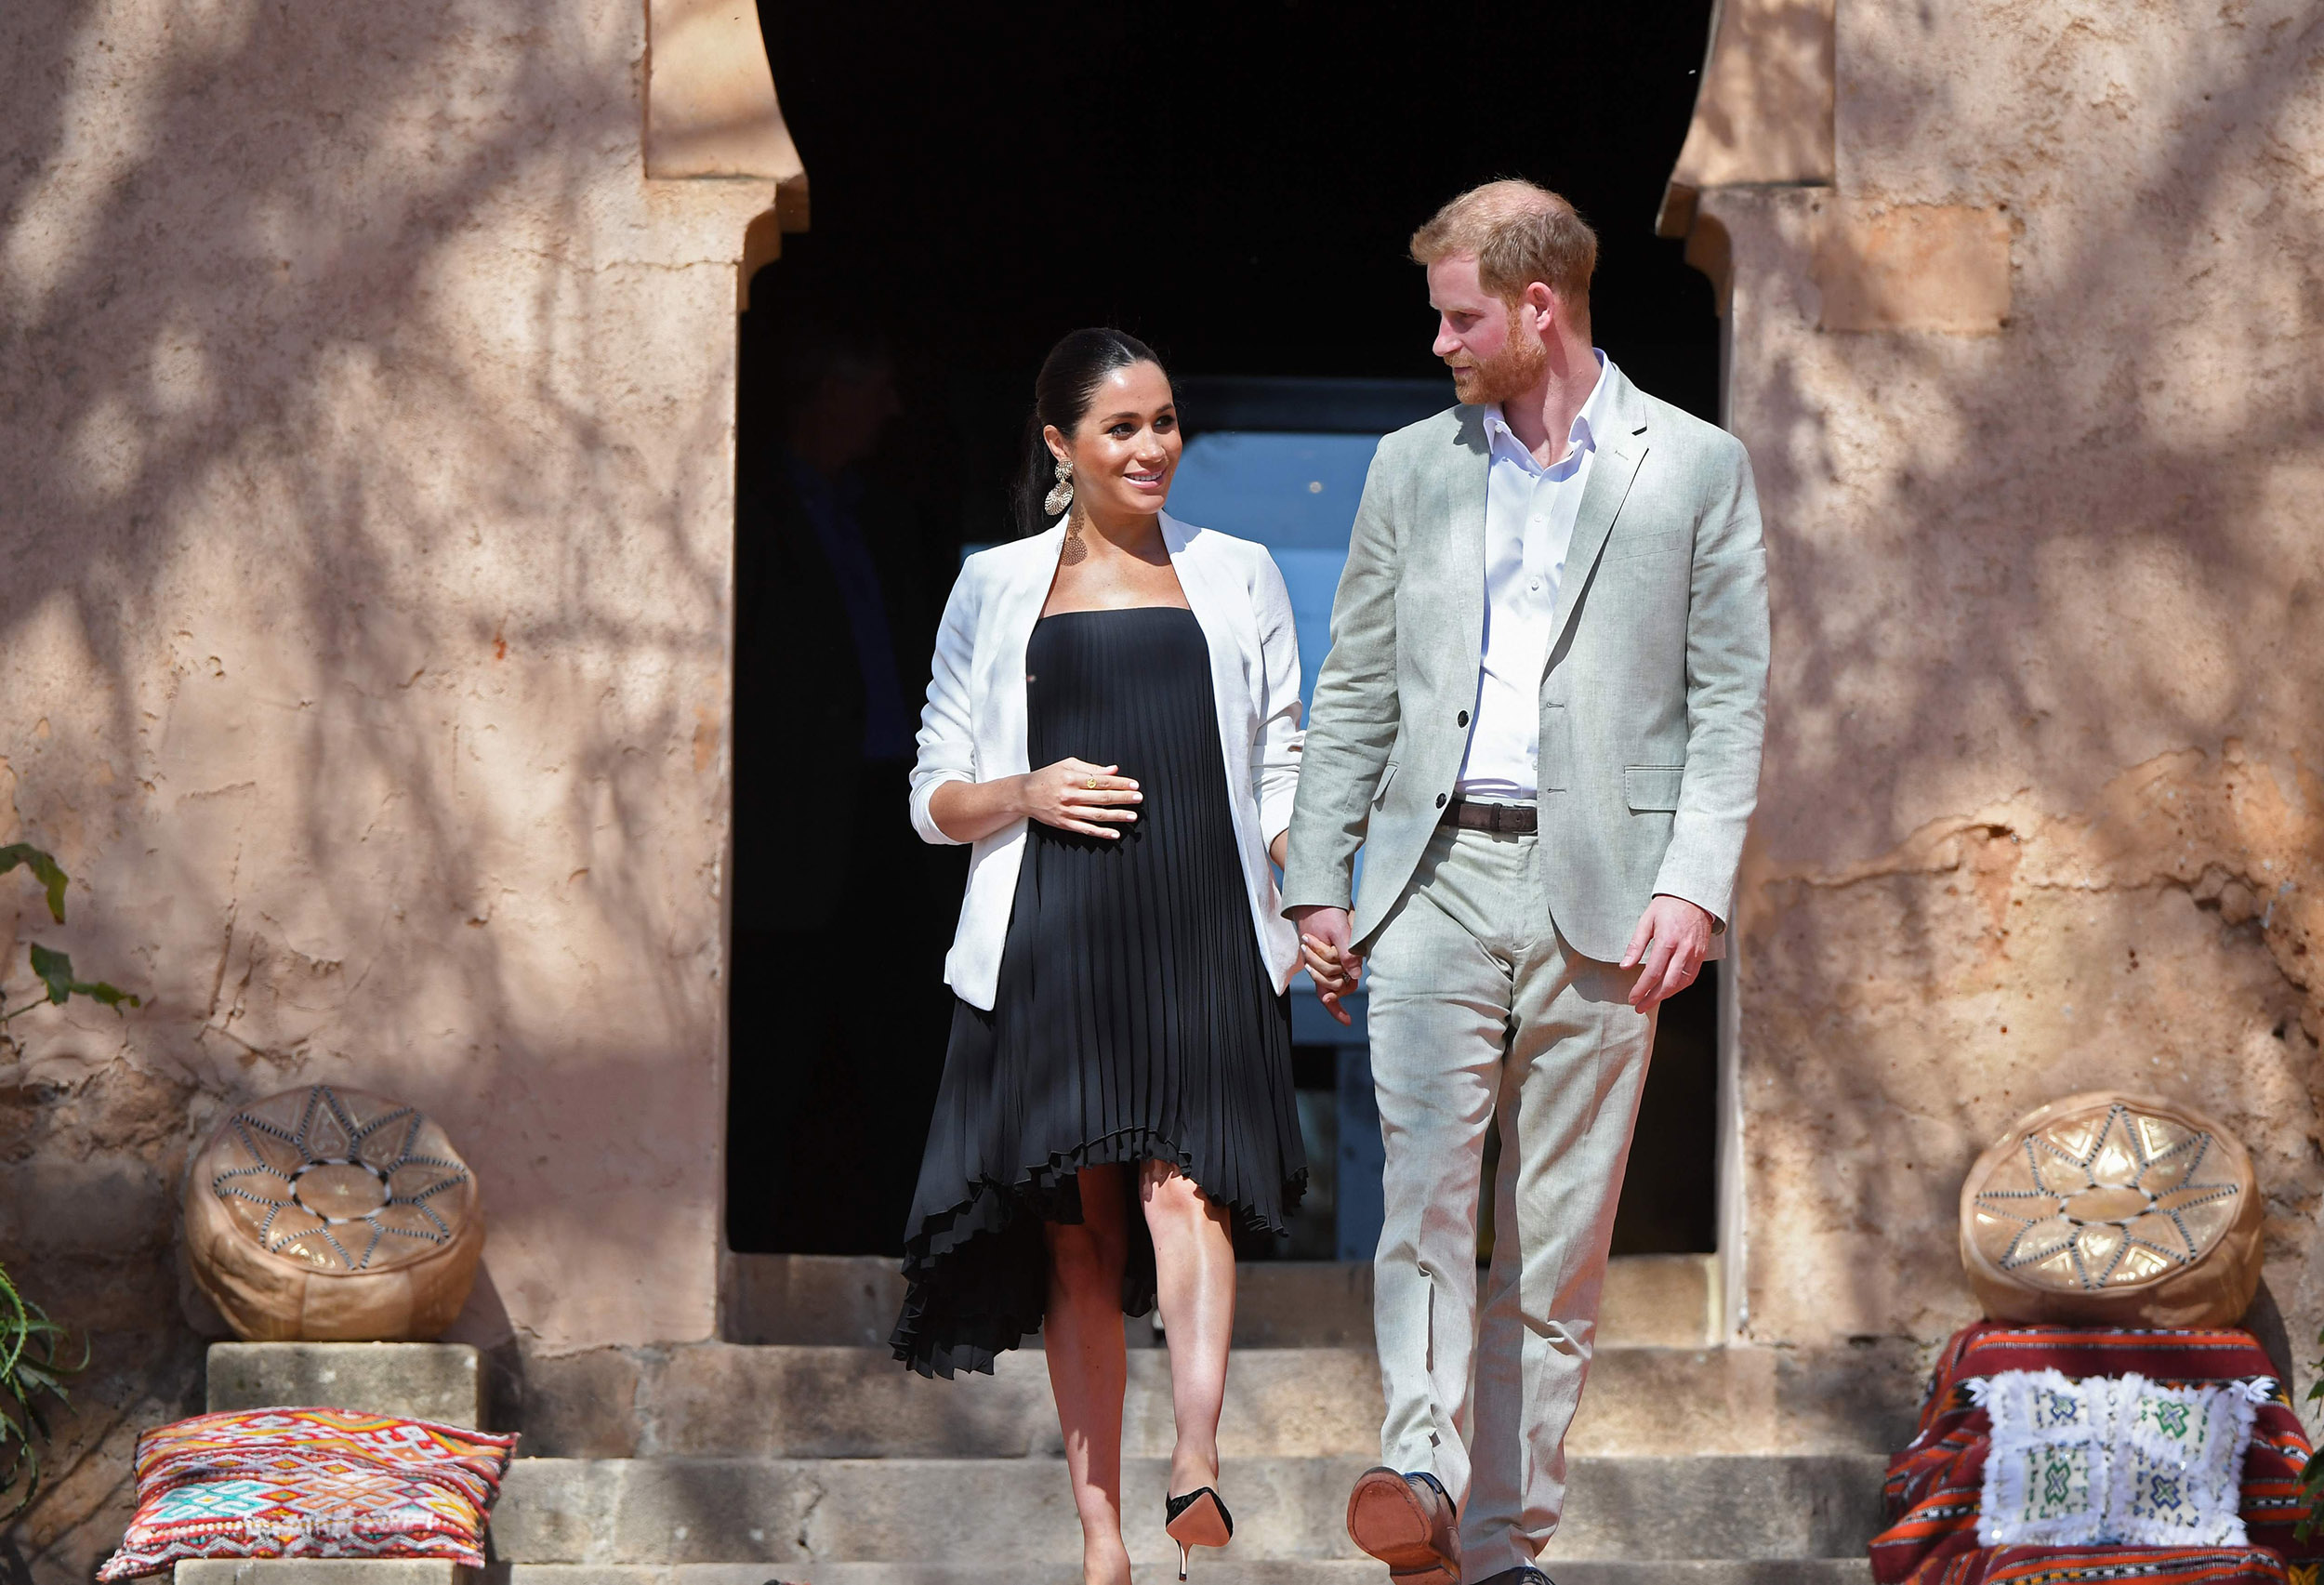 meghan markle felt unprotected by royal family during pregnancy court documents say https www nbcnews com news world meghan markle felt unprotected royal family during pregnancy court documents n1232740